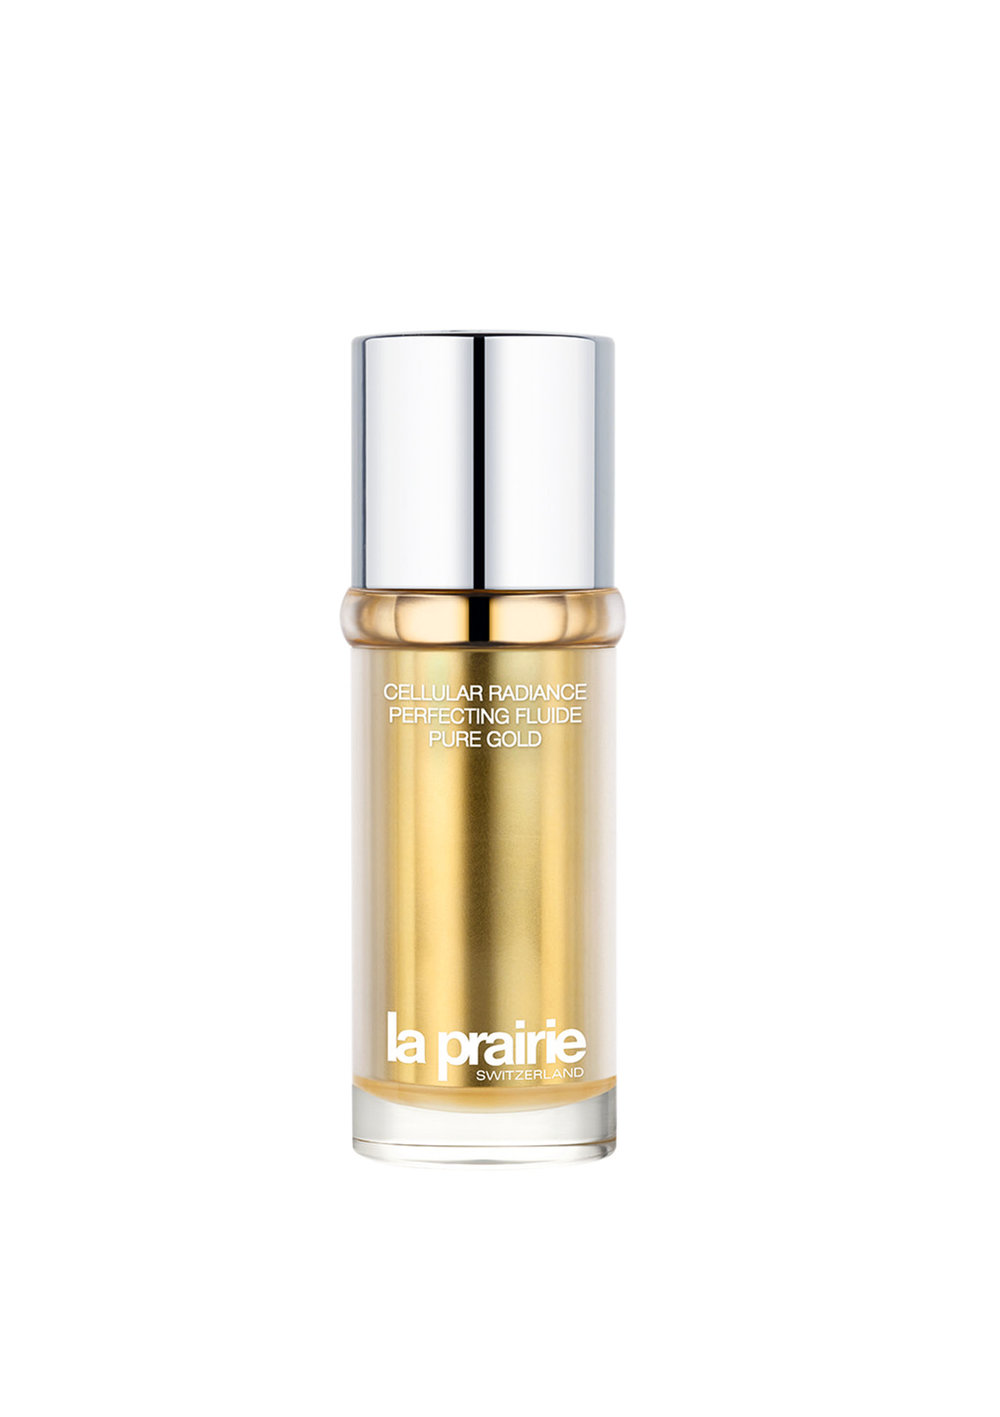 All that Glitters  The Cellular Radiance Perfecting Fluide Pure Gold by La Prairie $670  A glide of this shimmering fluid, infused with pure gold particles, instantly illuminates skin, thanks to its sophisticated light-reflecting technology. But the real magic is at work below the surface, where the secret formula regenerates and enhances texture and tone from within. Apply morning and/or evening after cleansing, toning and serum application. Using fingertips, gently smooth over face.